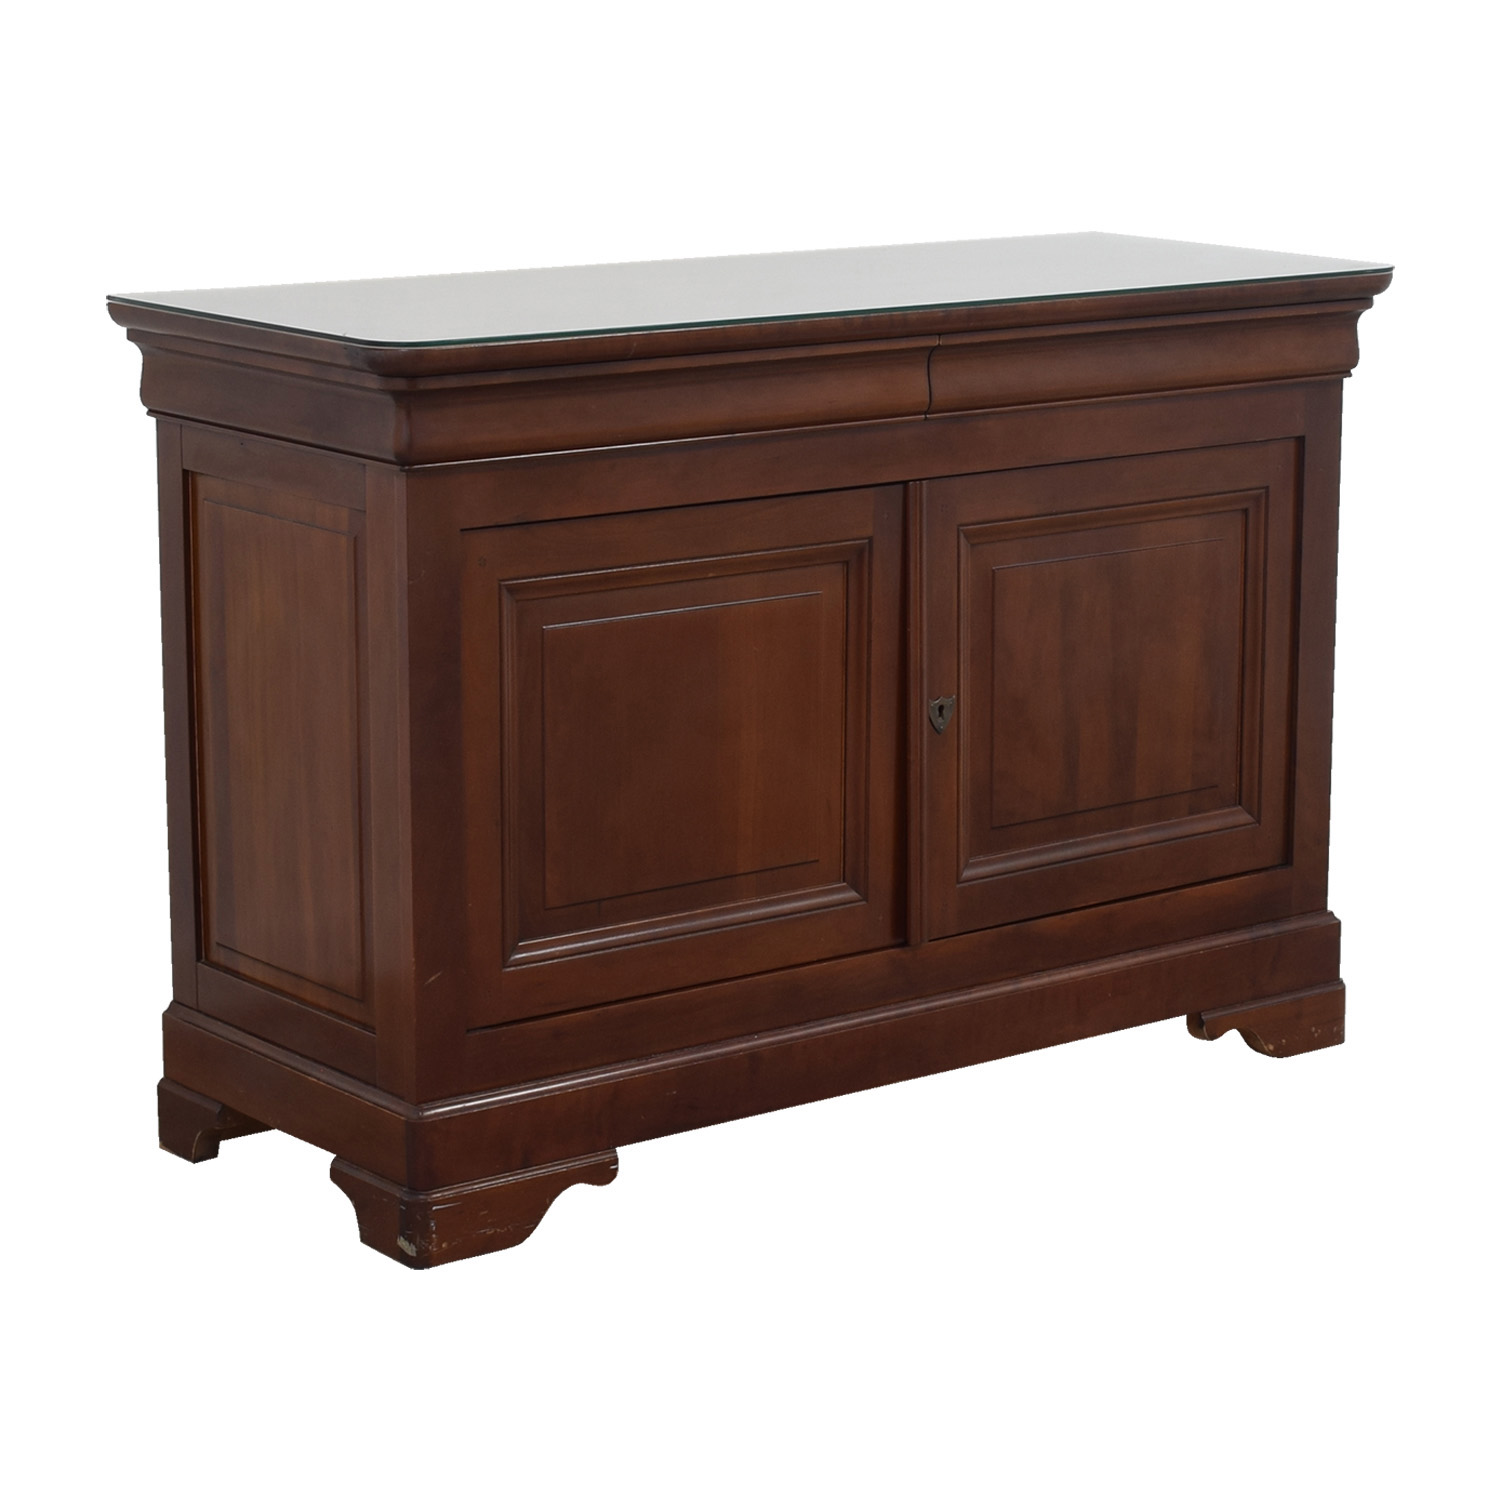 75 off grange grange wood serving storage buffet tables. Black Bedroom Furniture Sets. Home Design Ideas